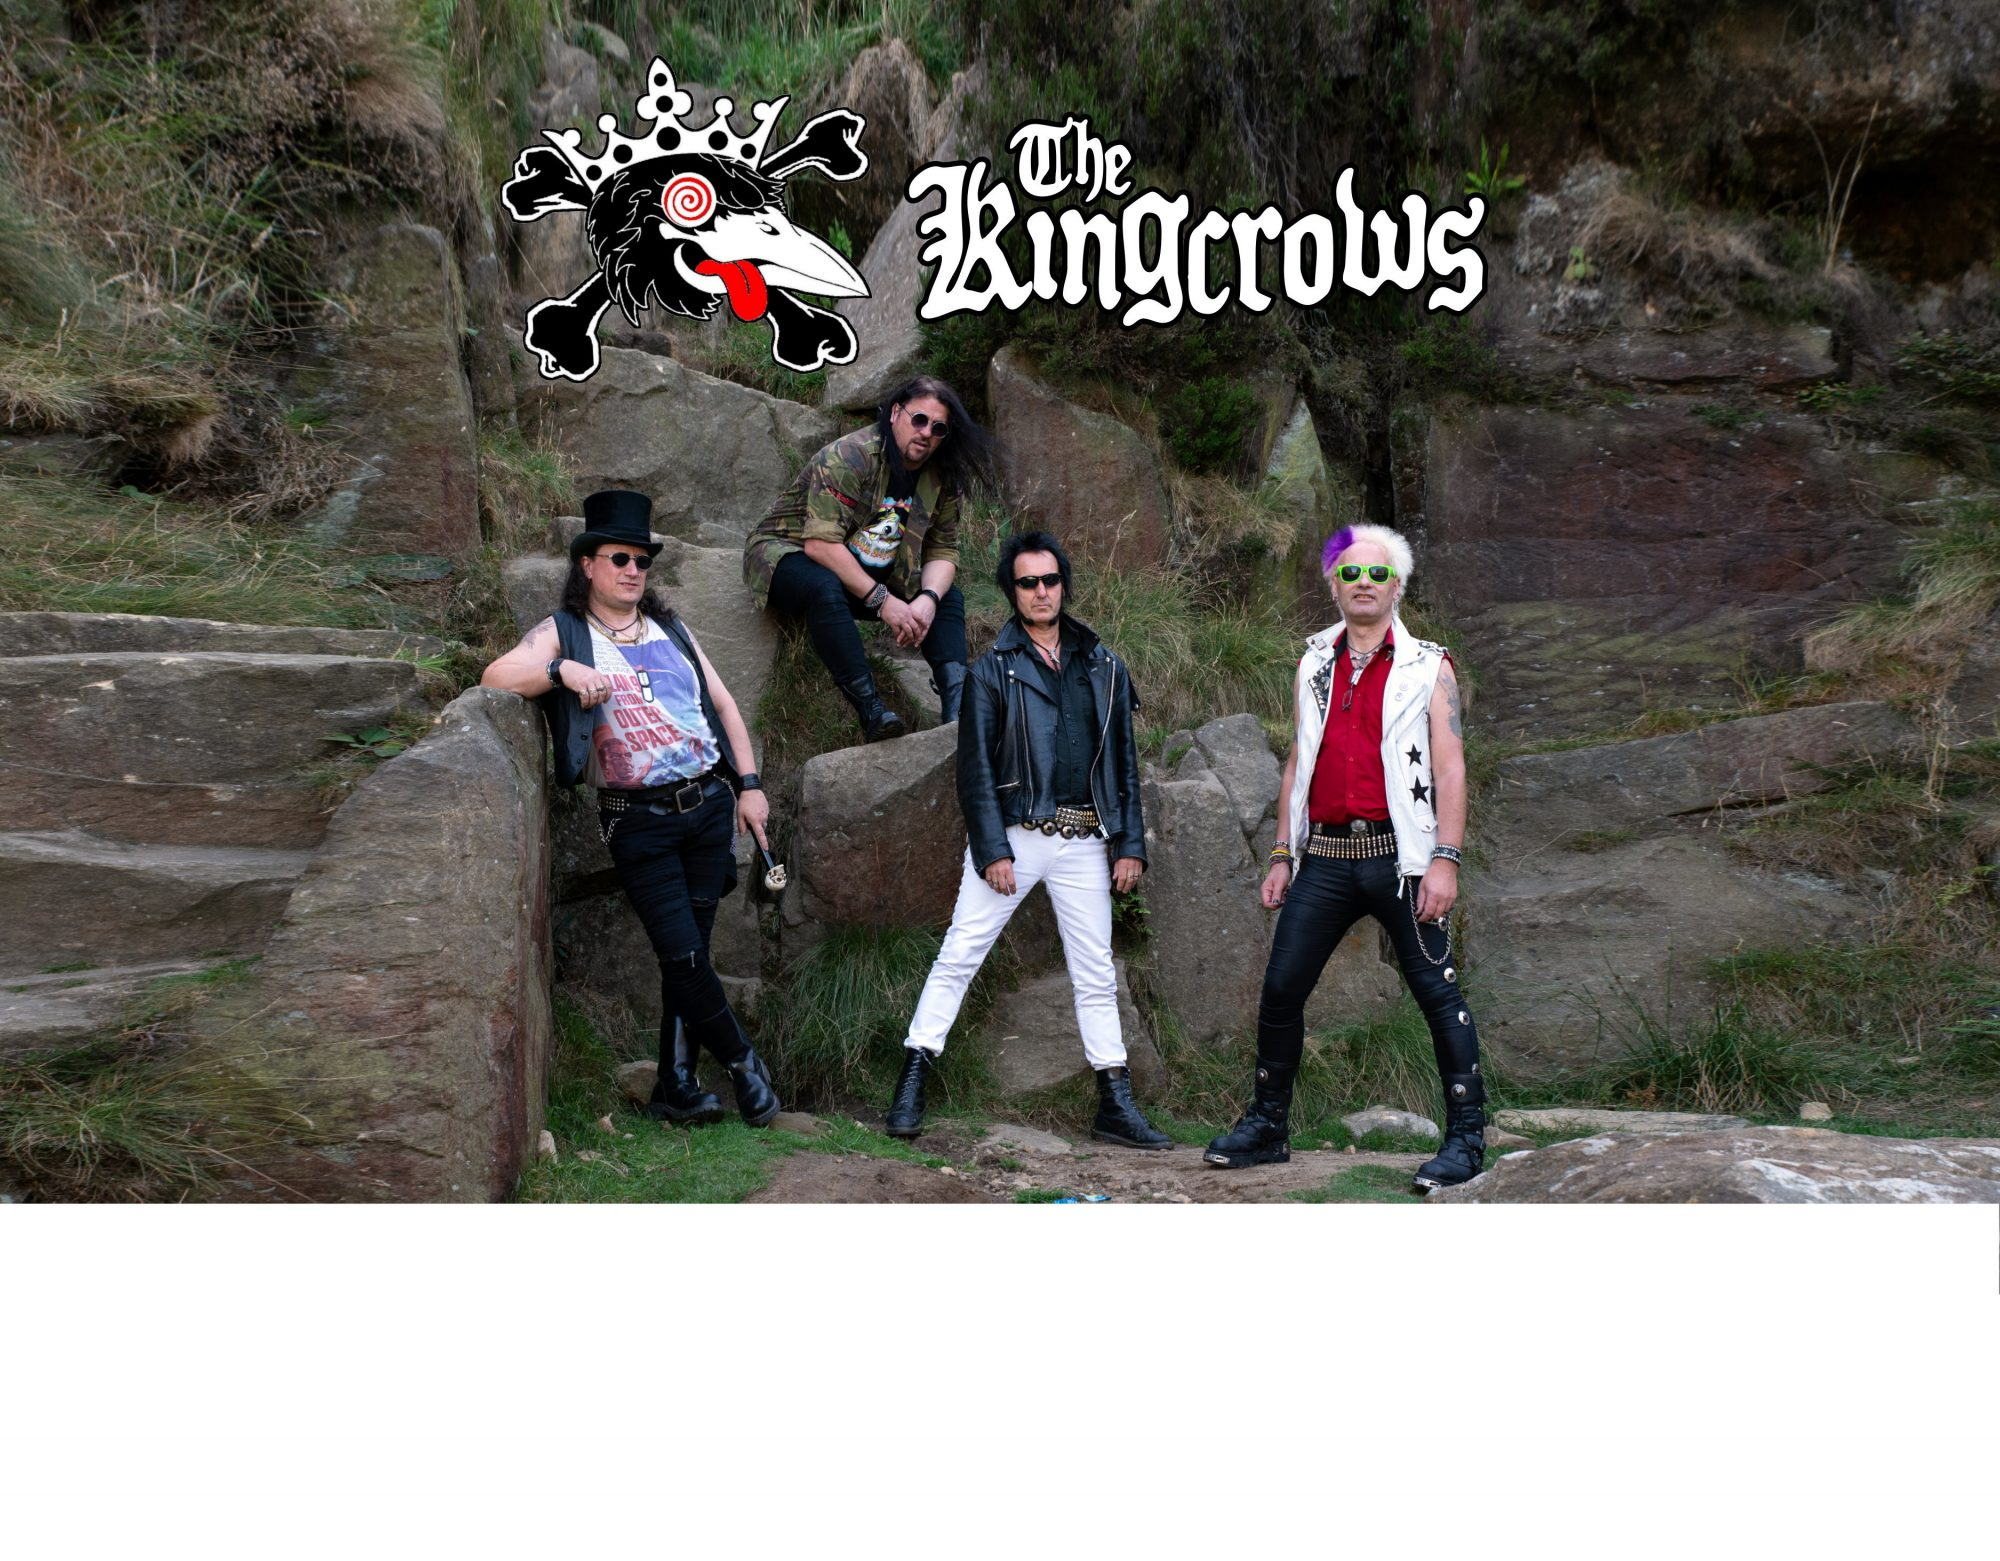 THE KINGCROWS